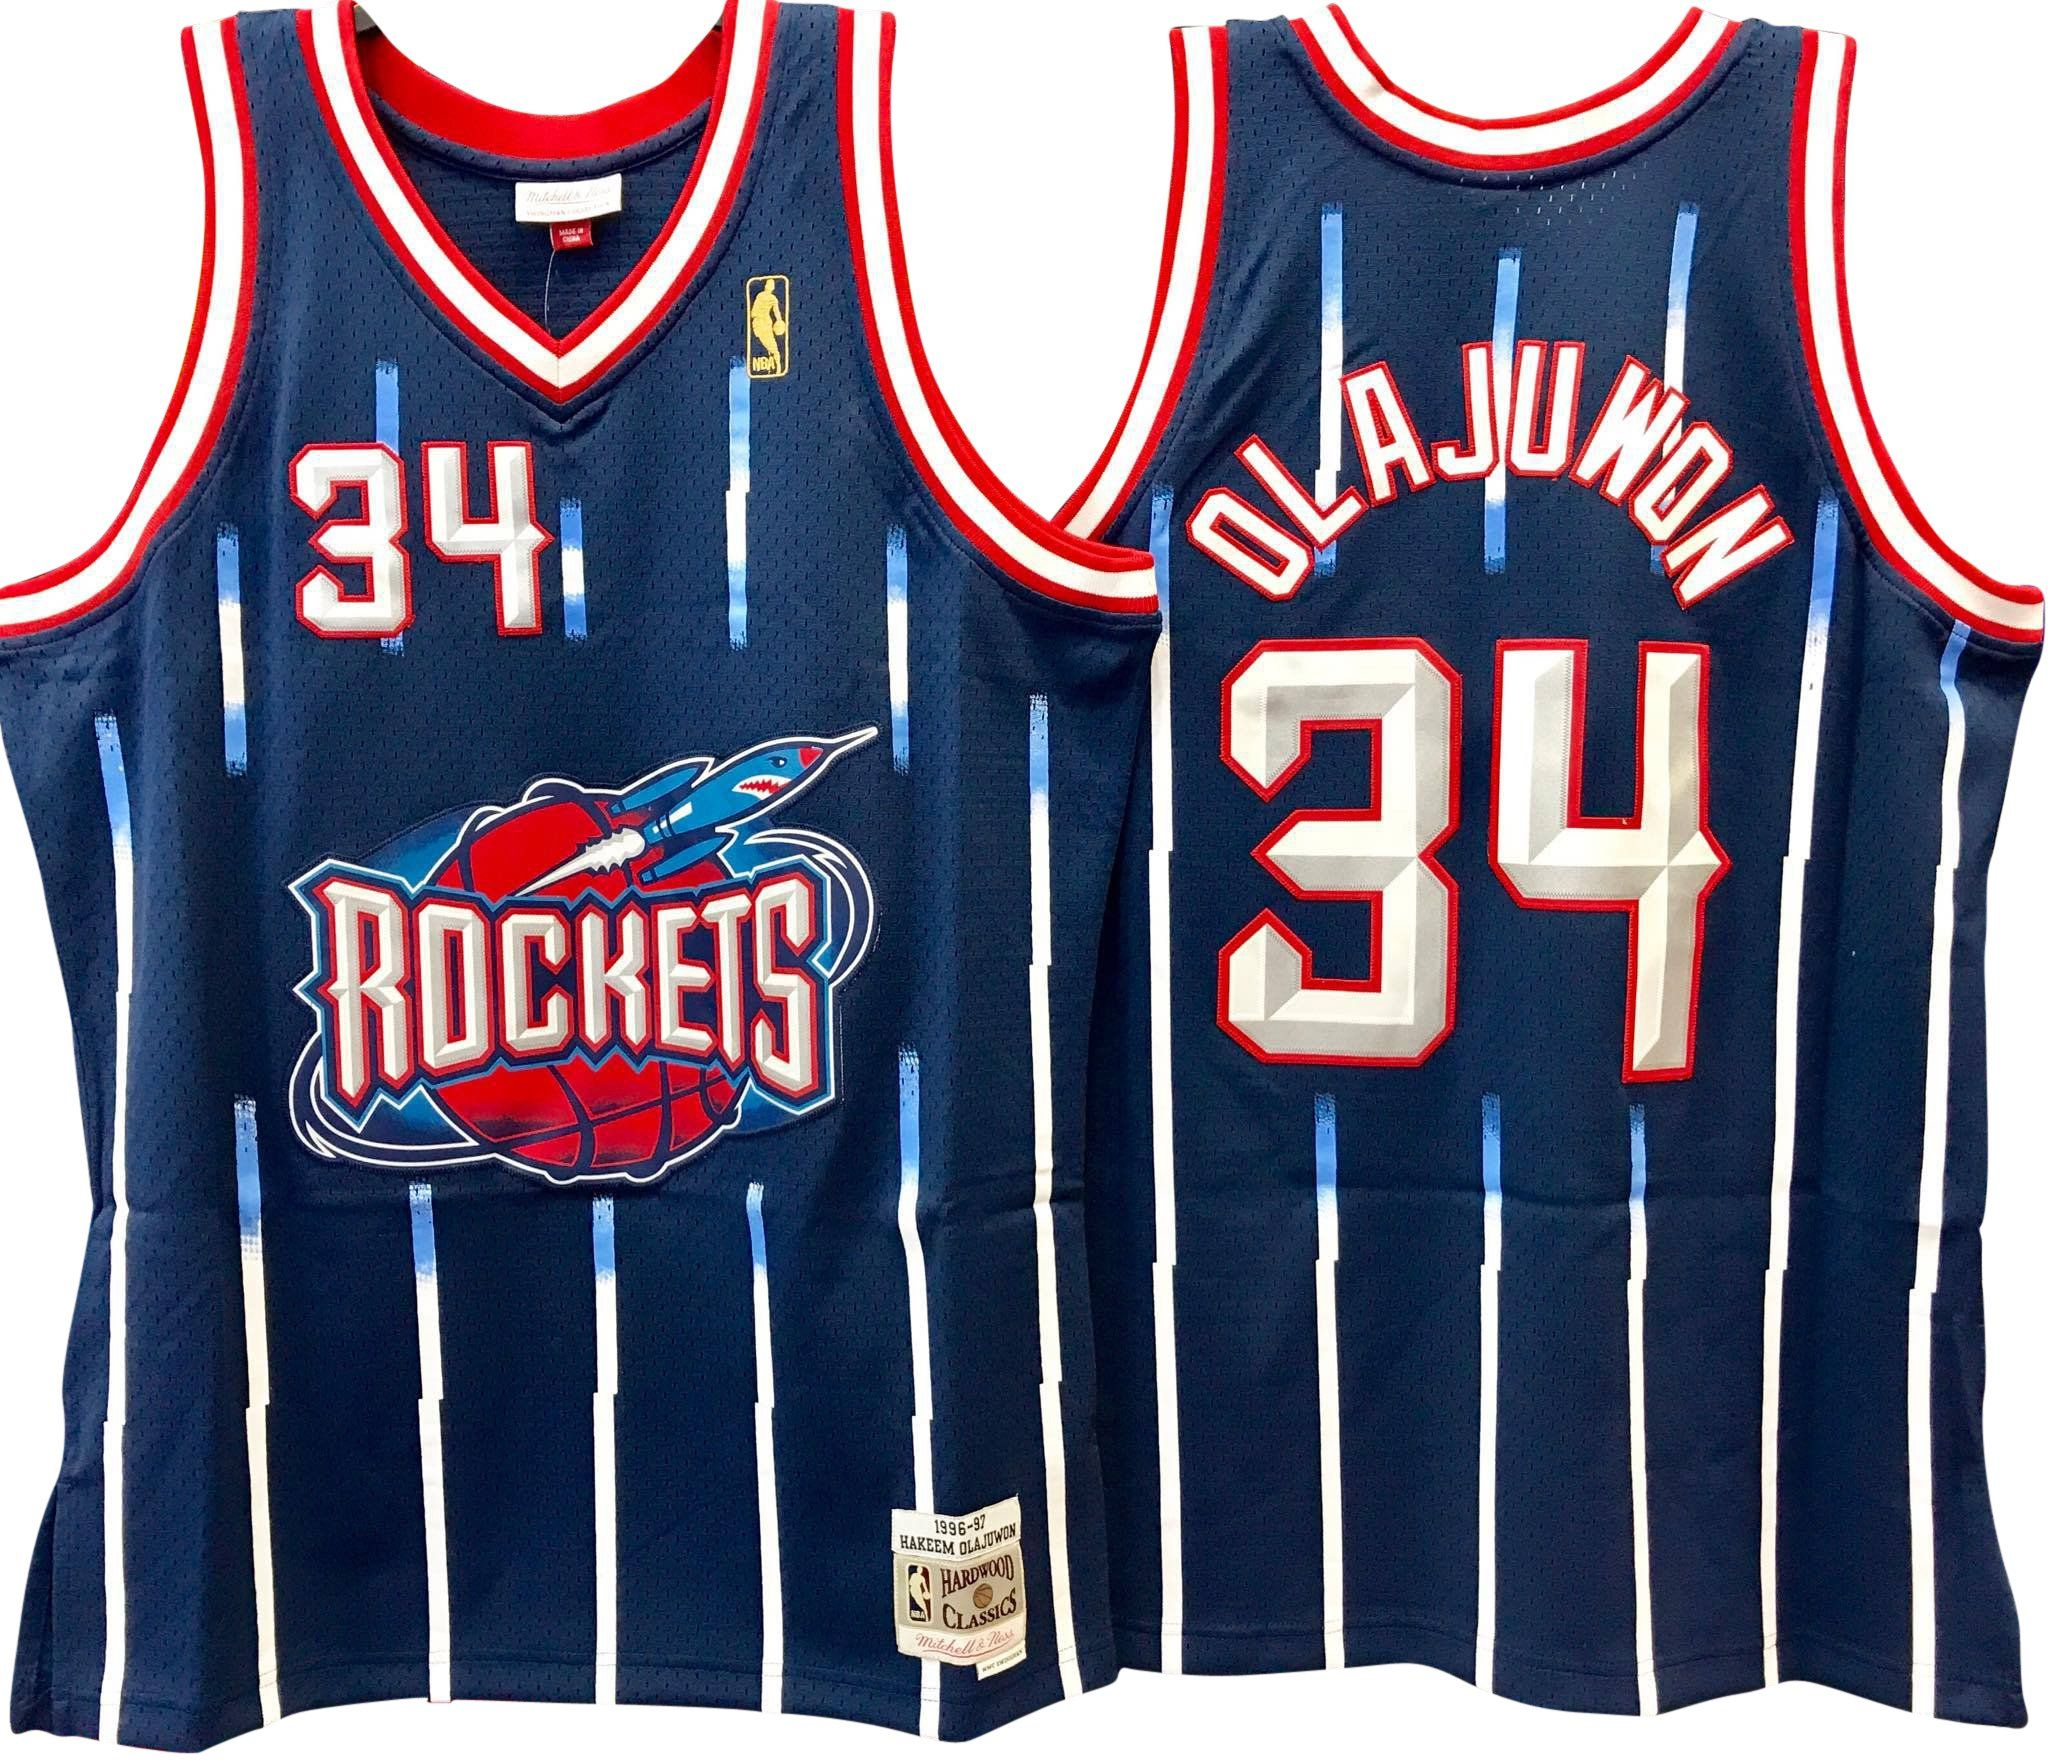 HAKEEM OLAJUWON HOUSTON ROCKETS NBA HARDWOOD CLASSICS THROWBACK NAVY  SWINGMAN JERSEY 9408af3ae